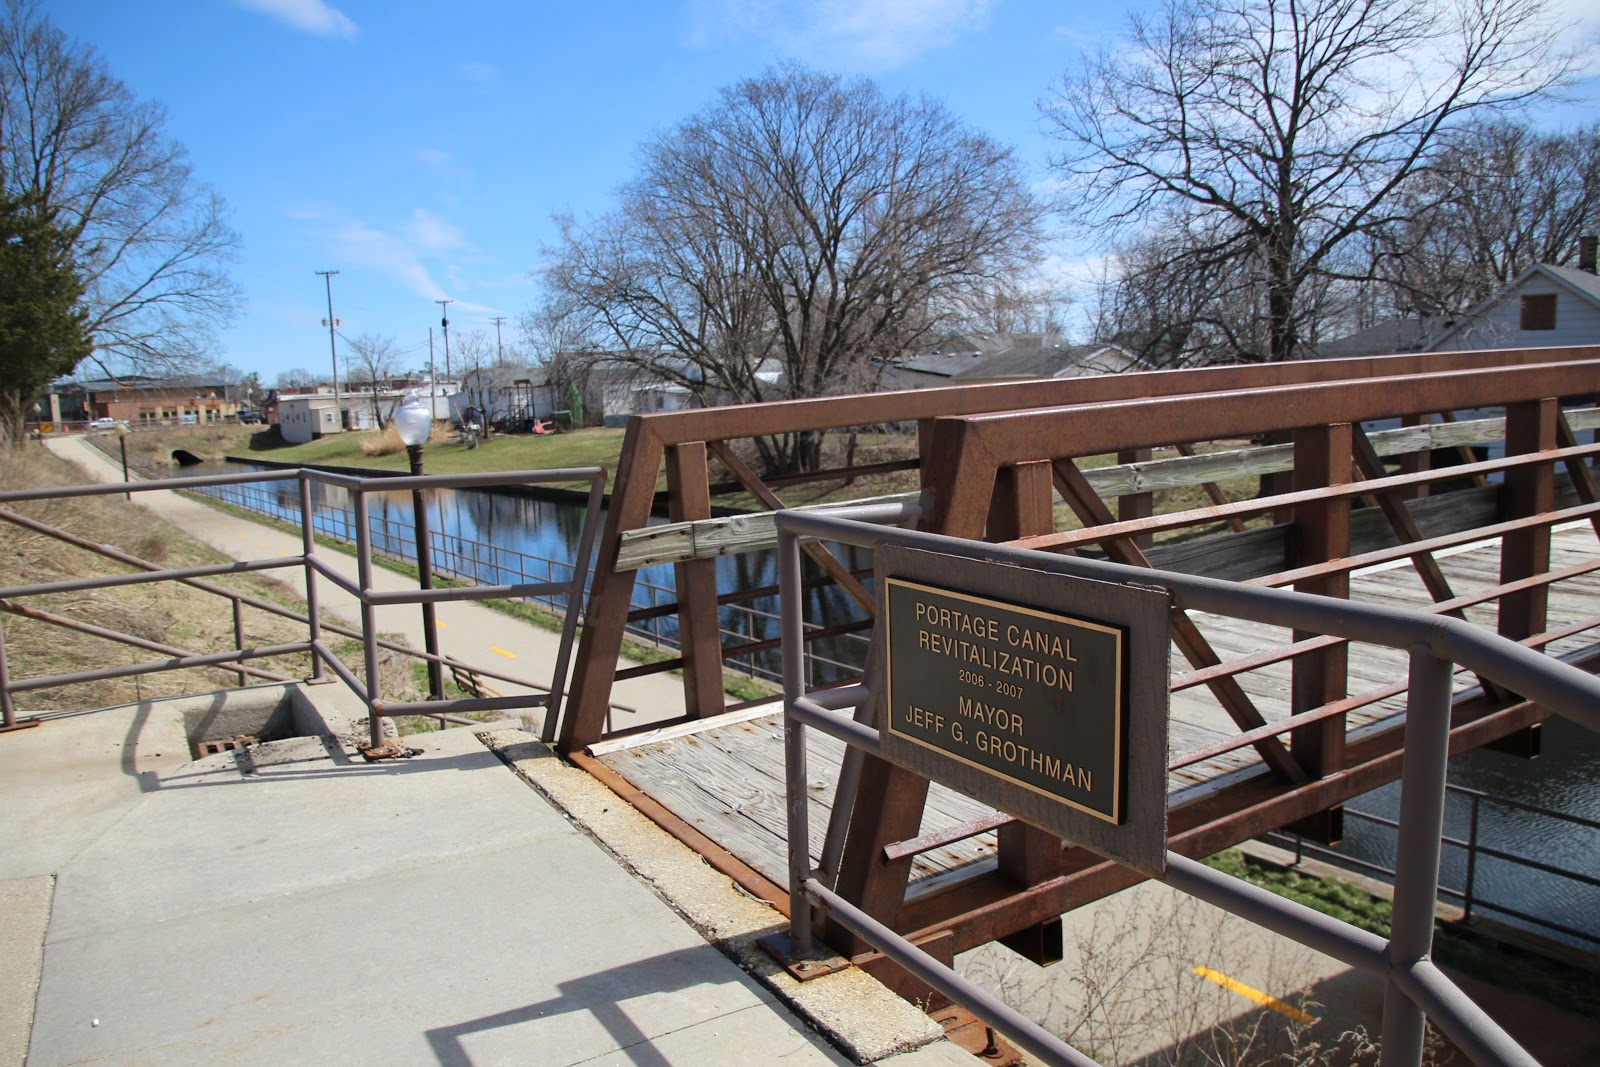 Wisconsin Historical Markers: Welcome To The Portage Canal